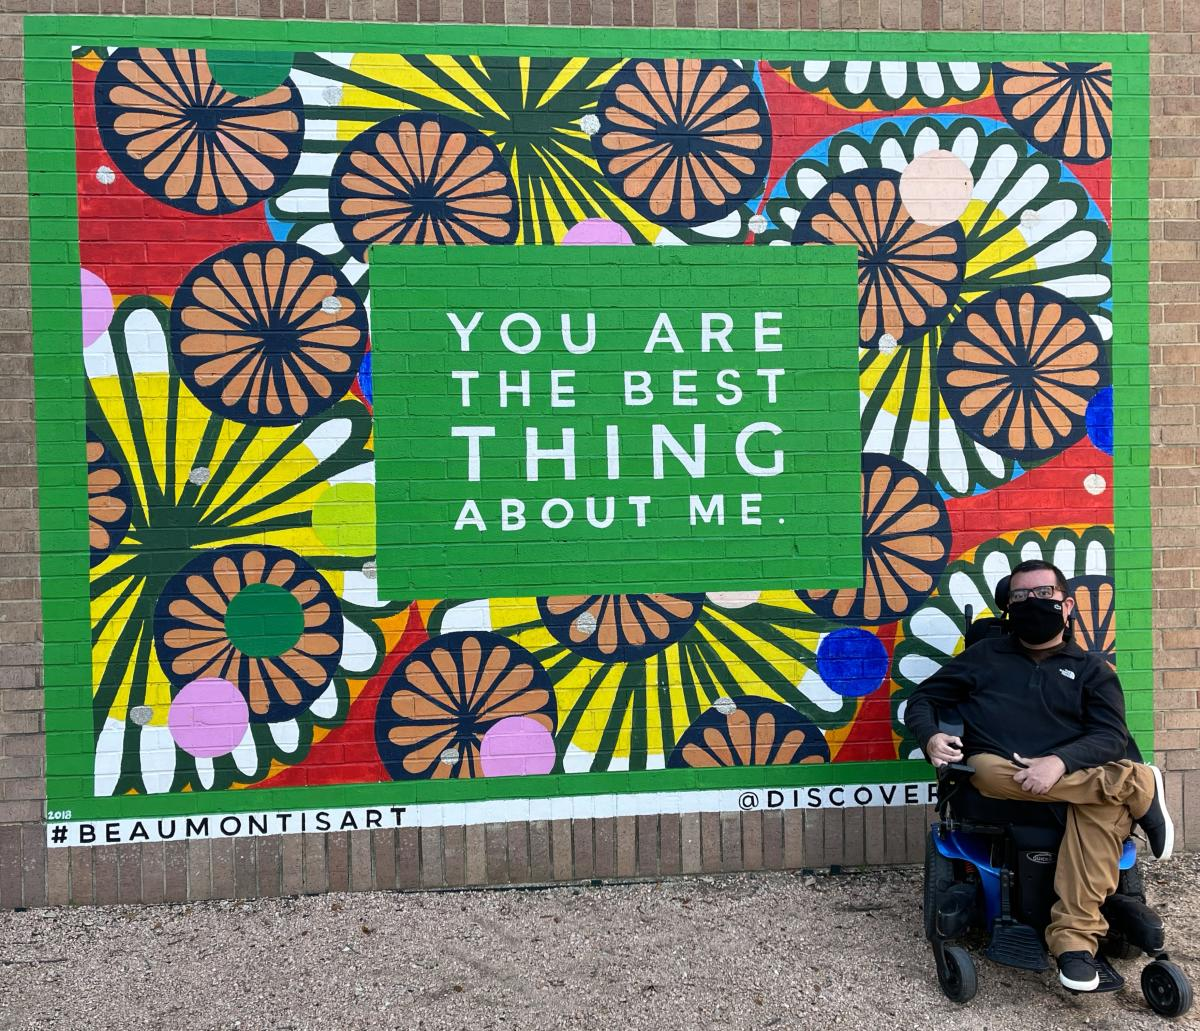 cory in front of mural saying you are the best thing about me